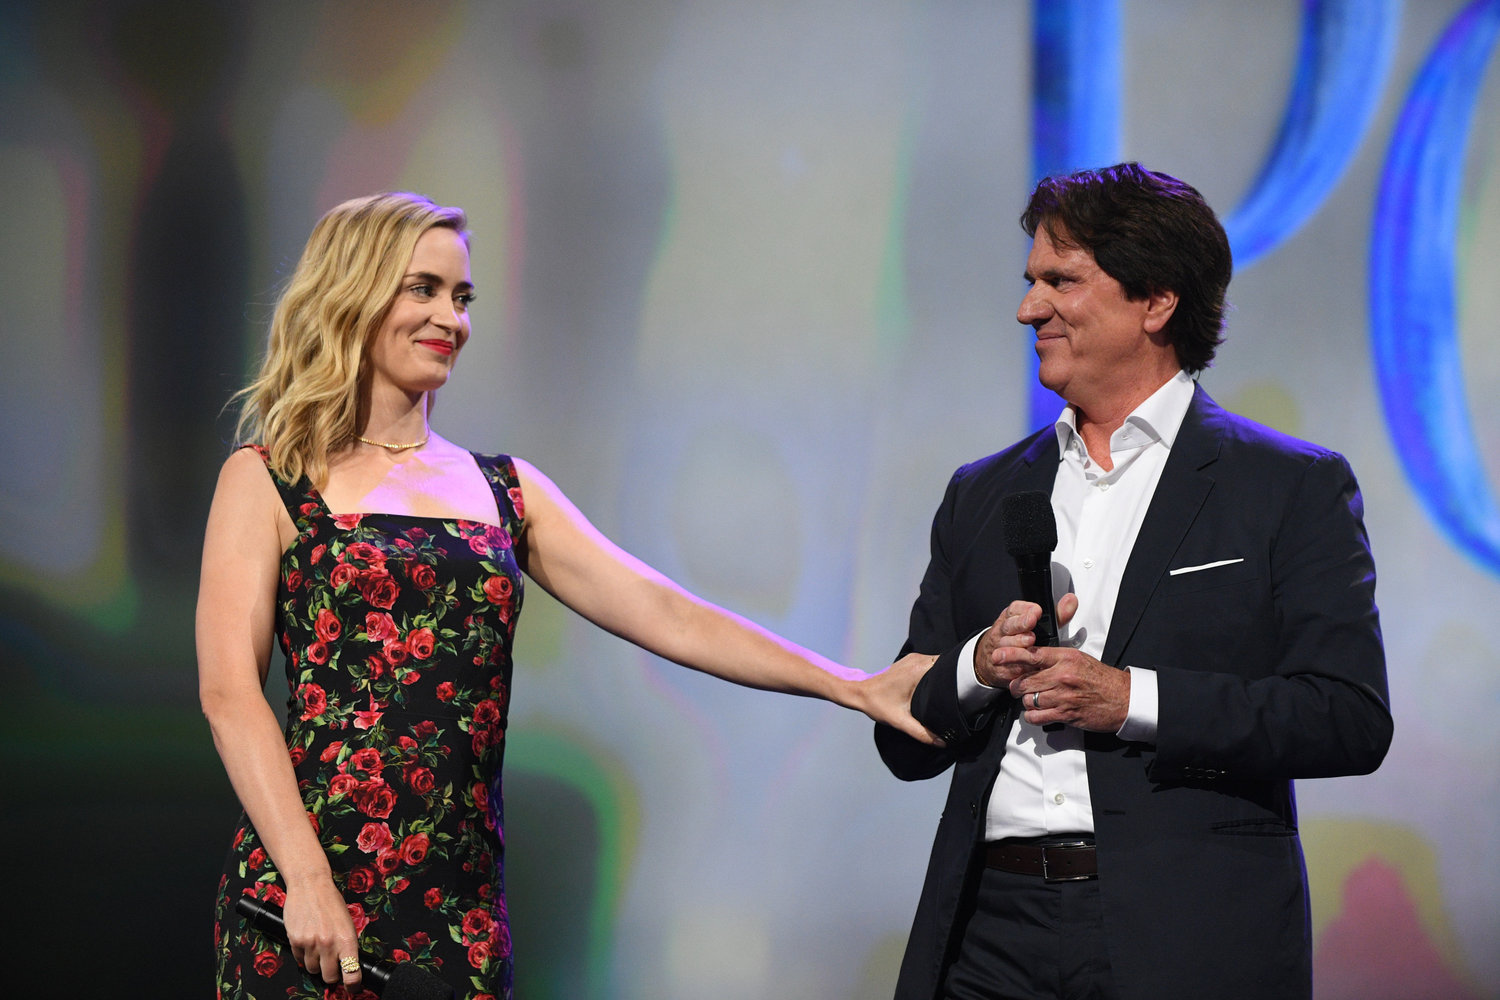 'MARY POPPINS' SEQUEL. Emily Blunt and Rob Marshall talk about the upcoming 'Mary Poppins Returns.' Photo by Disney/Image Group LA